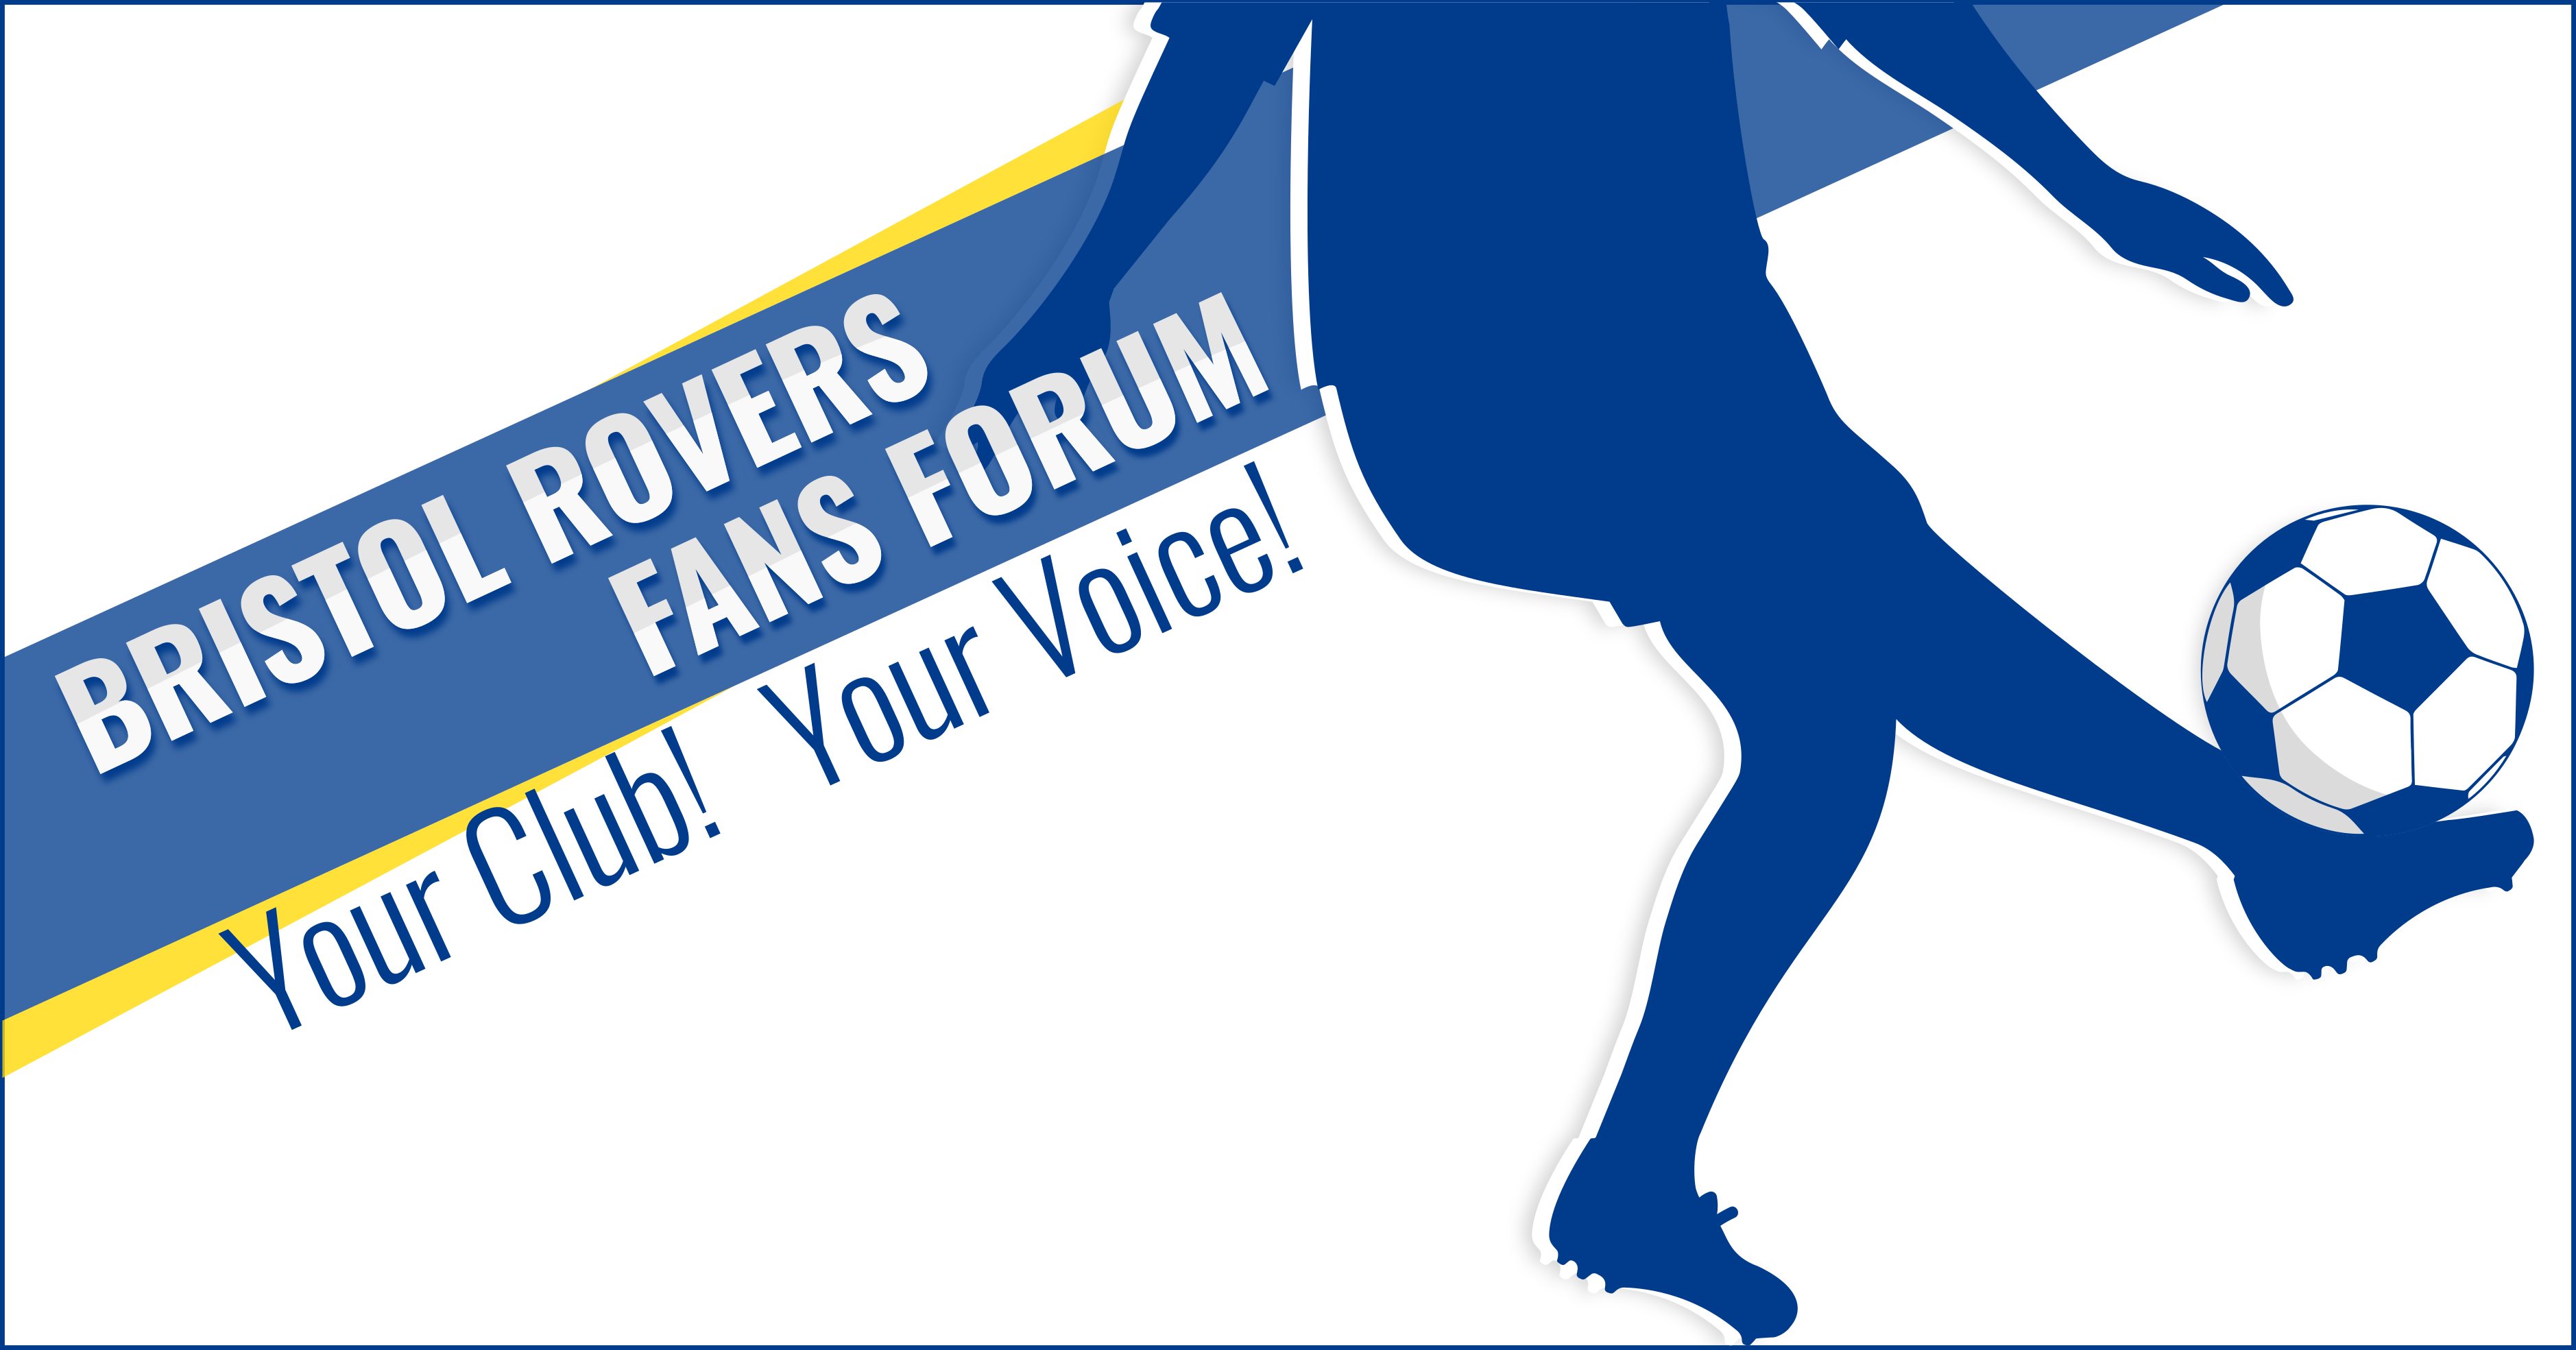 Bristol Rovers Forum